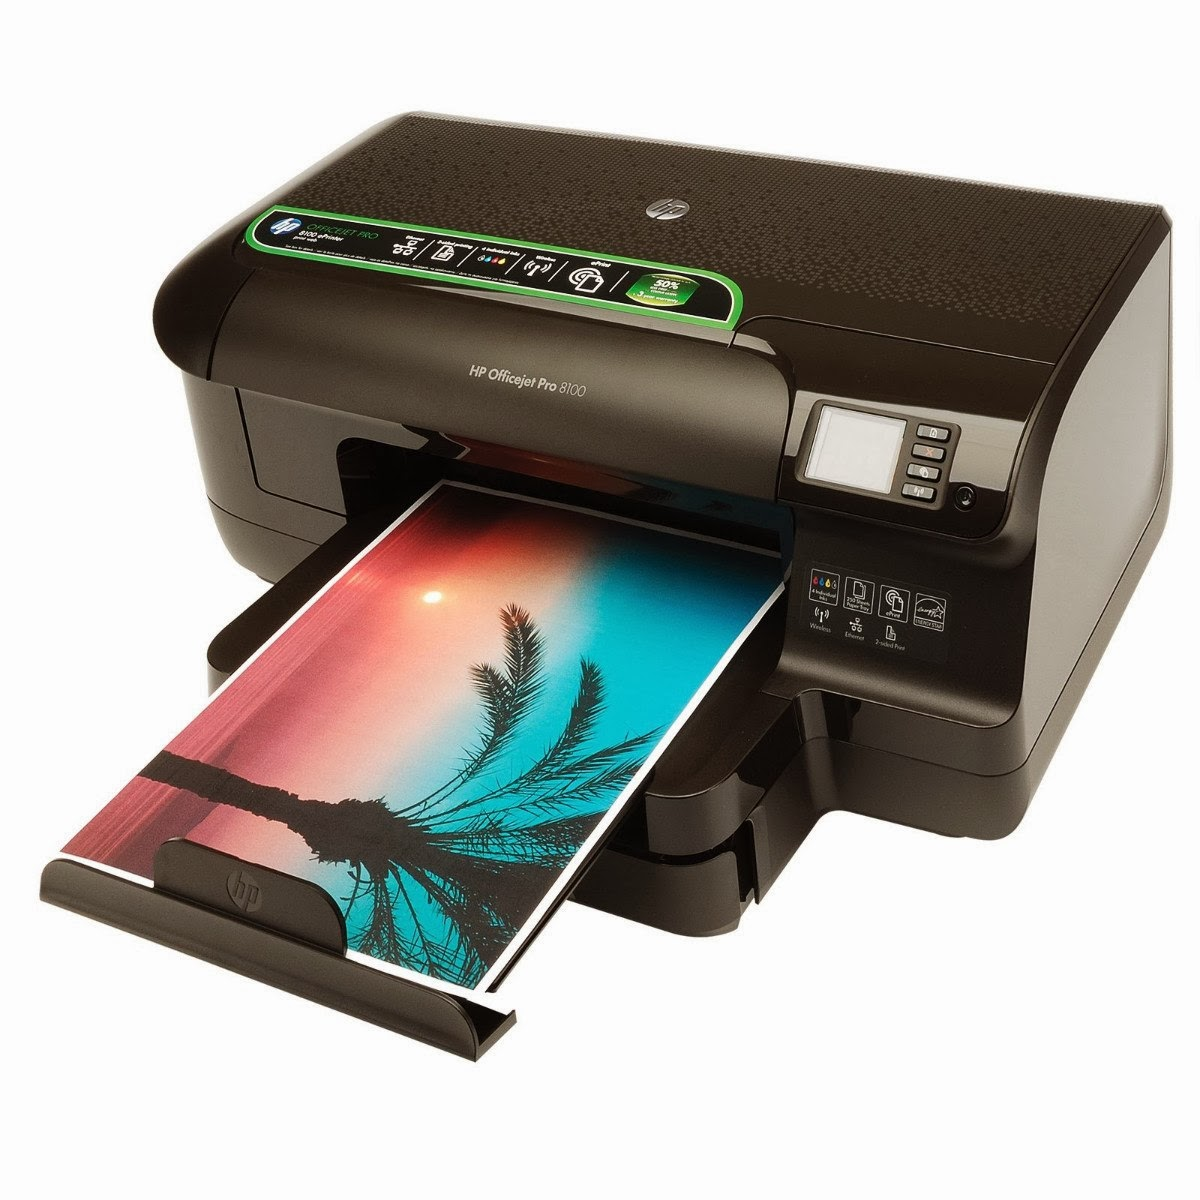 Download Driver HP Officejet 8100 | Download Drivers